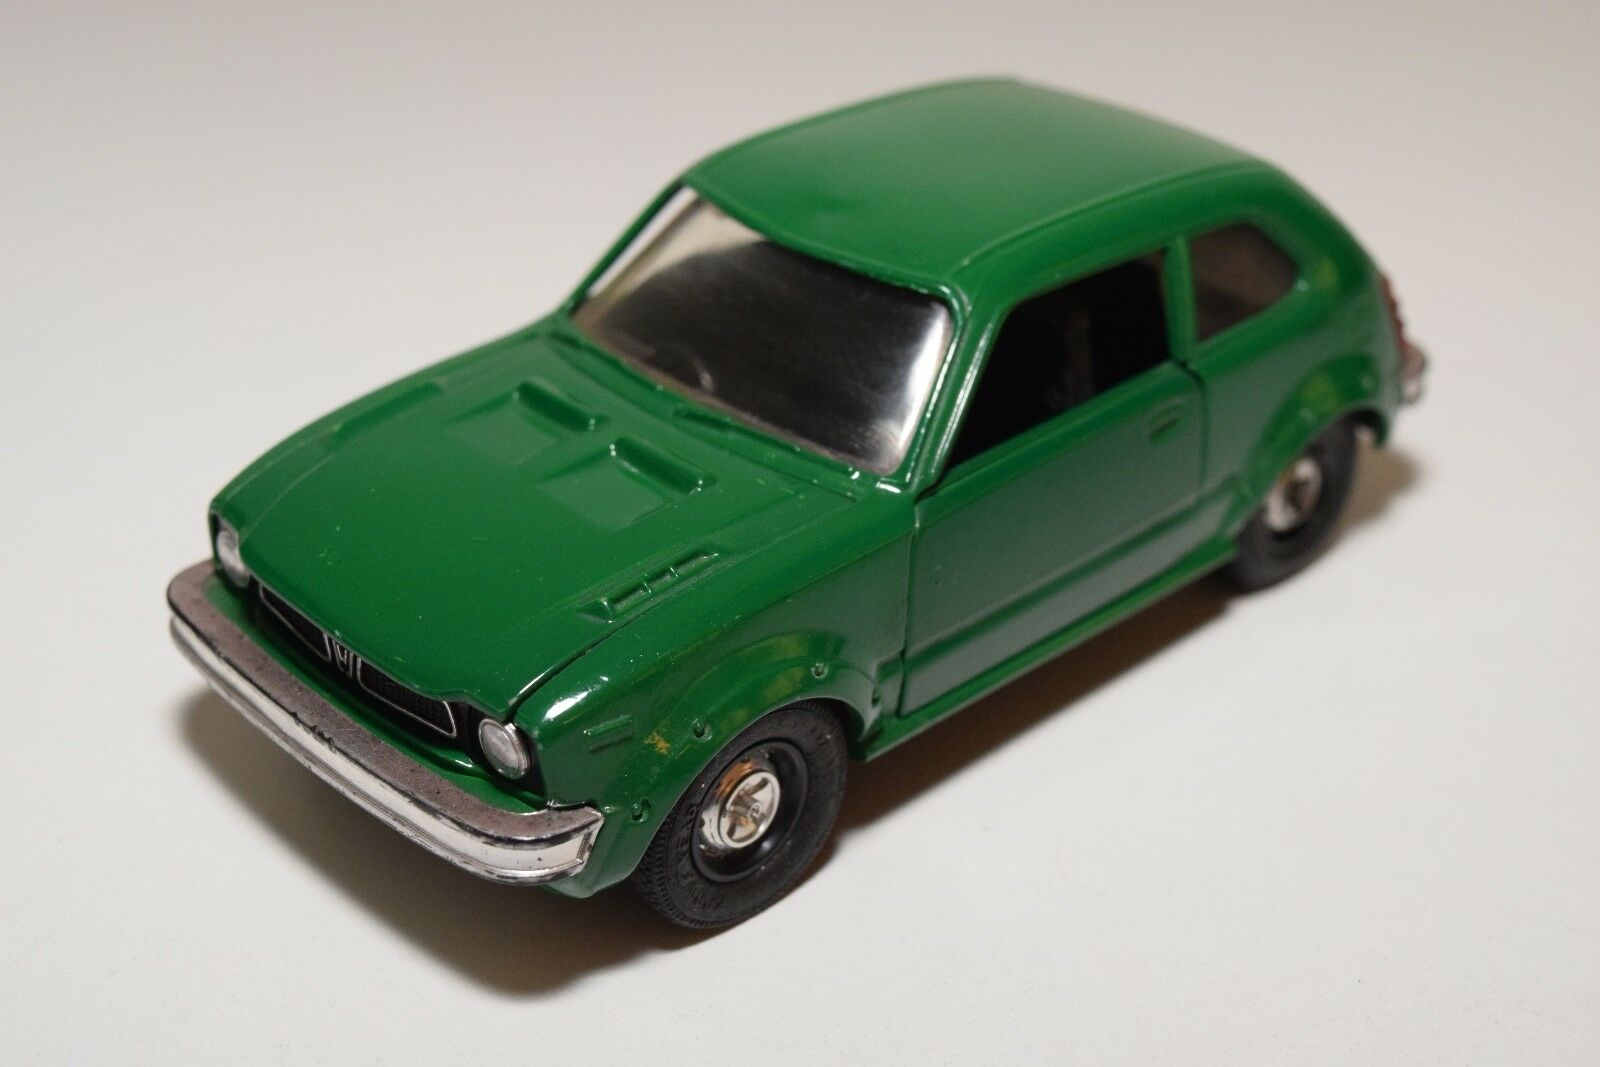 K EIDAI EDAI GRIP JAPAN HONDA CIVIC 1500 GTL verde NEAR MINT CONDITION